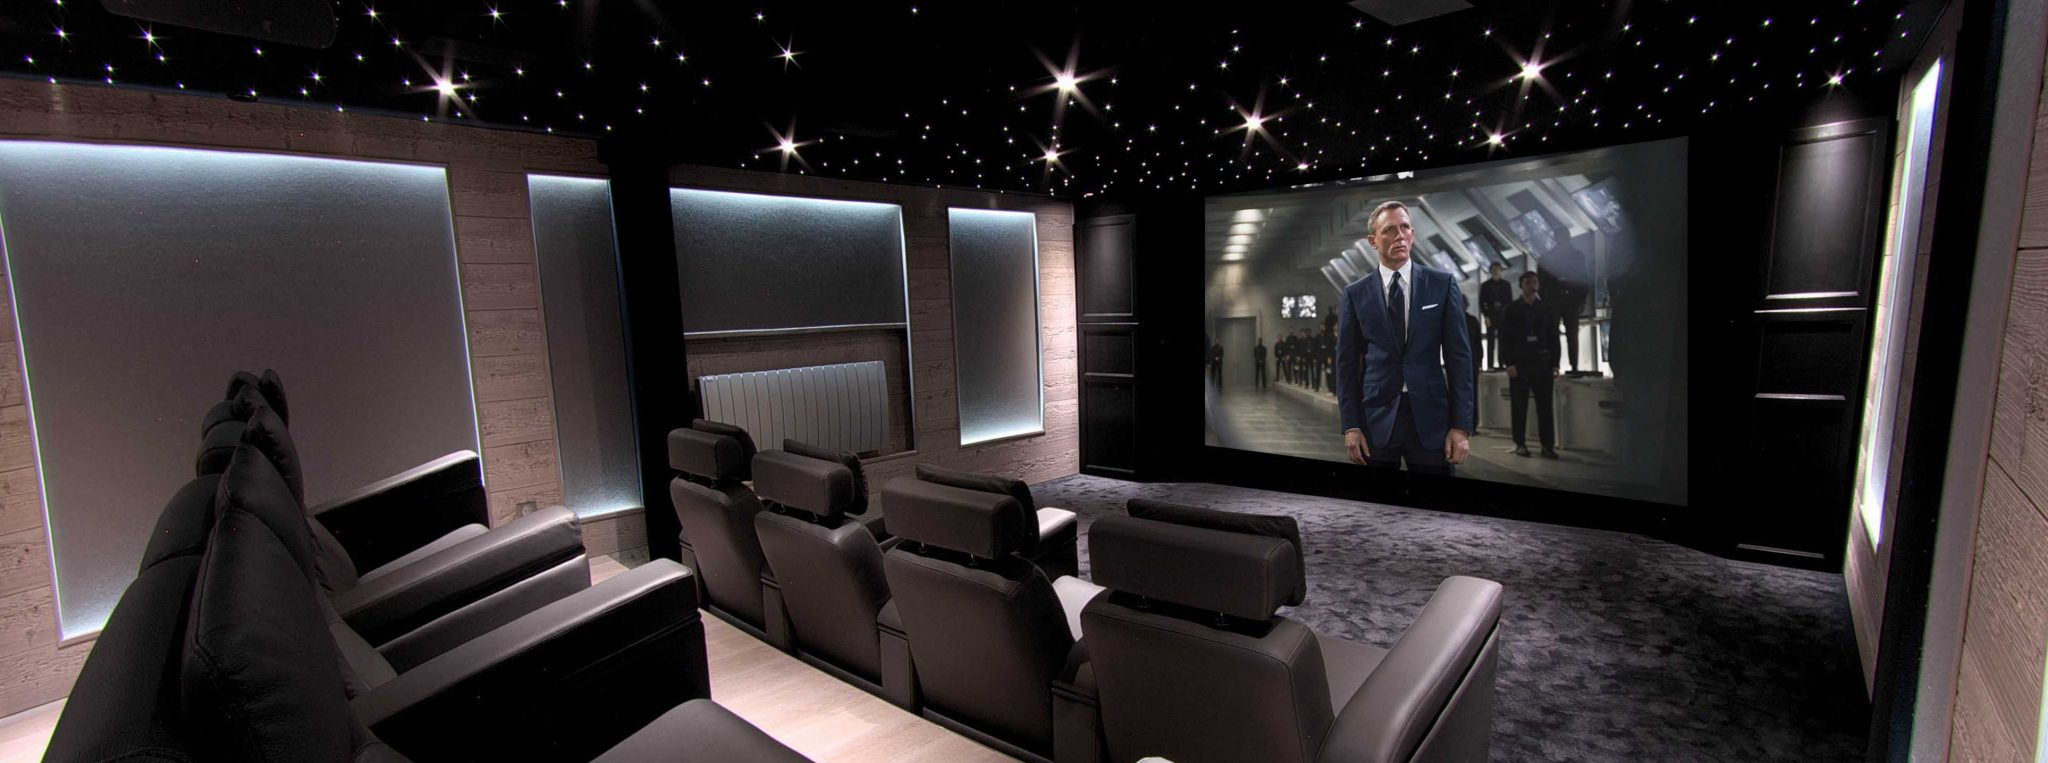 salle cinema privee columba 5. Black Bedroom Furniture Sets. Home Design Ideas